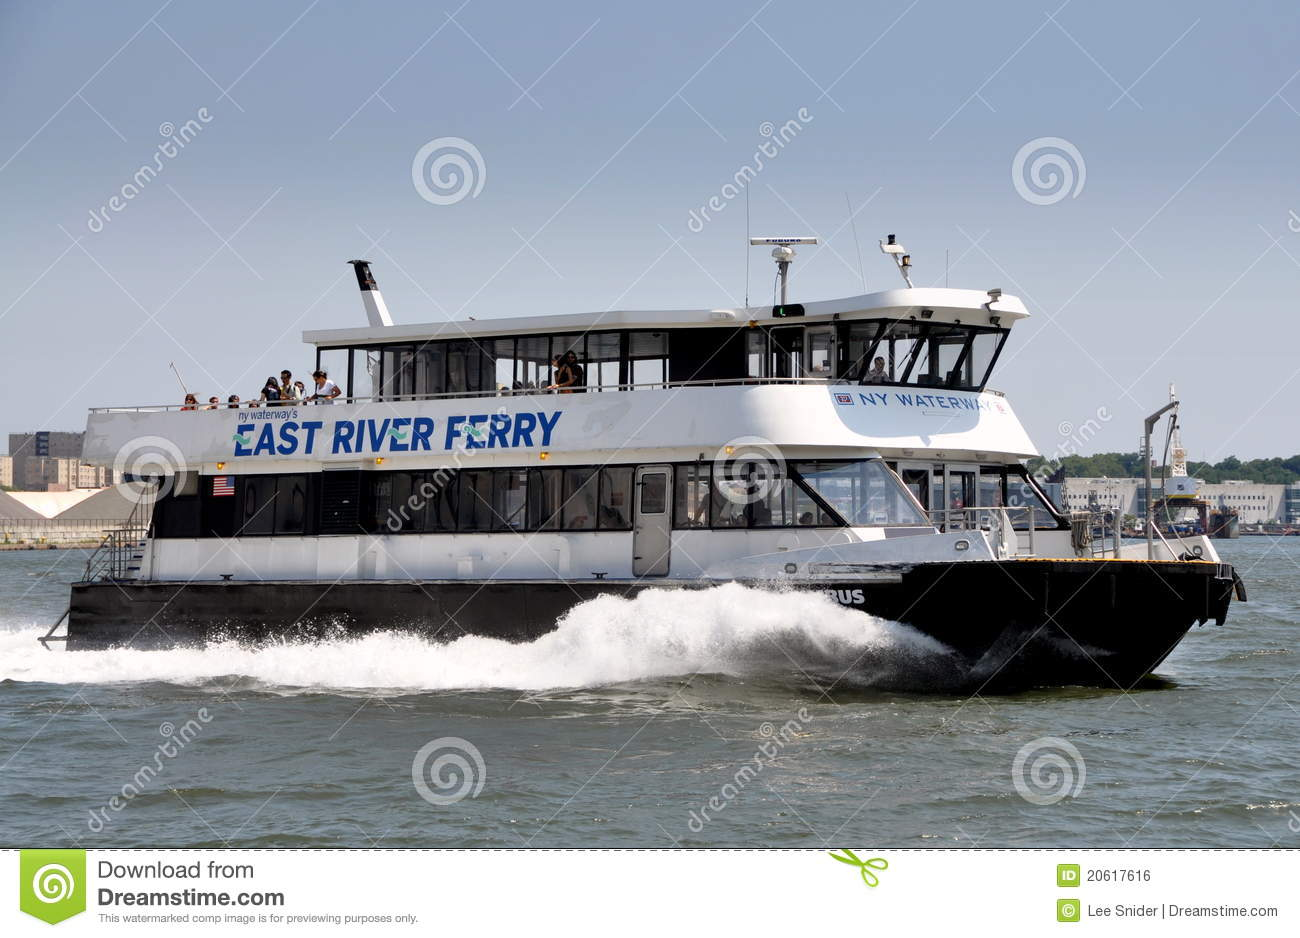 NYC: NY Waterway Ferry Boat Editorial Photo - Image of east, ferry: 20617616